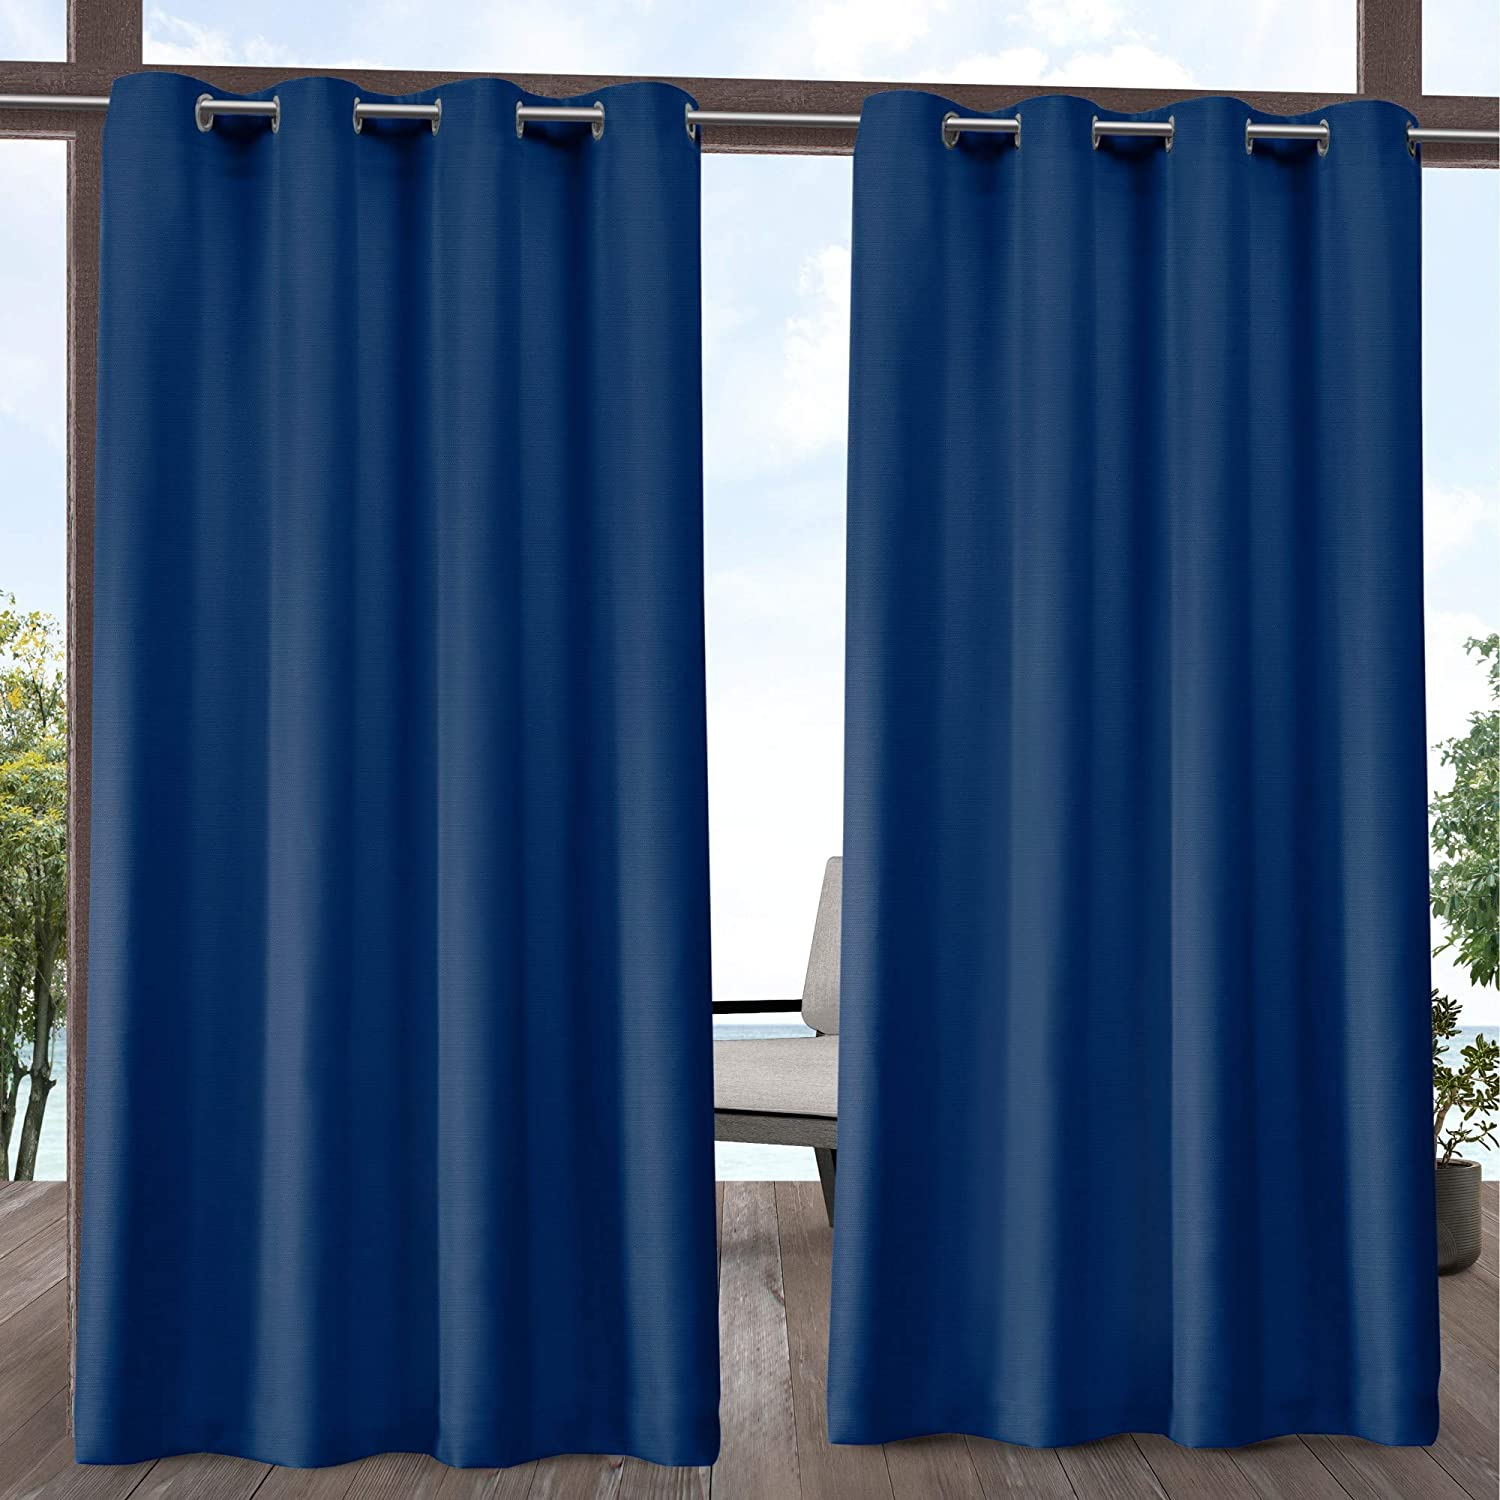 Exclusive Home Curtains Delano Heavyweight Textured Indoor/Outdoor Grommet Top Curtain Panel Pair, 54x96, Azure,EH8170-09 2-96G